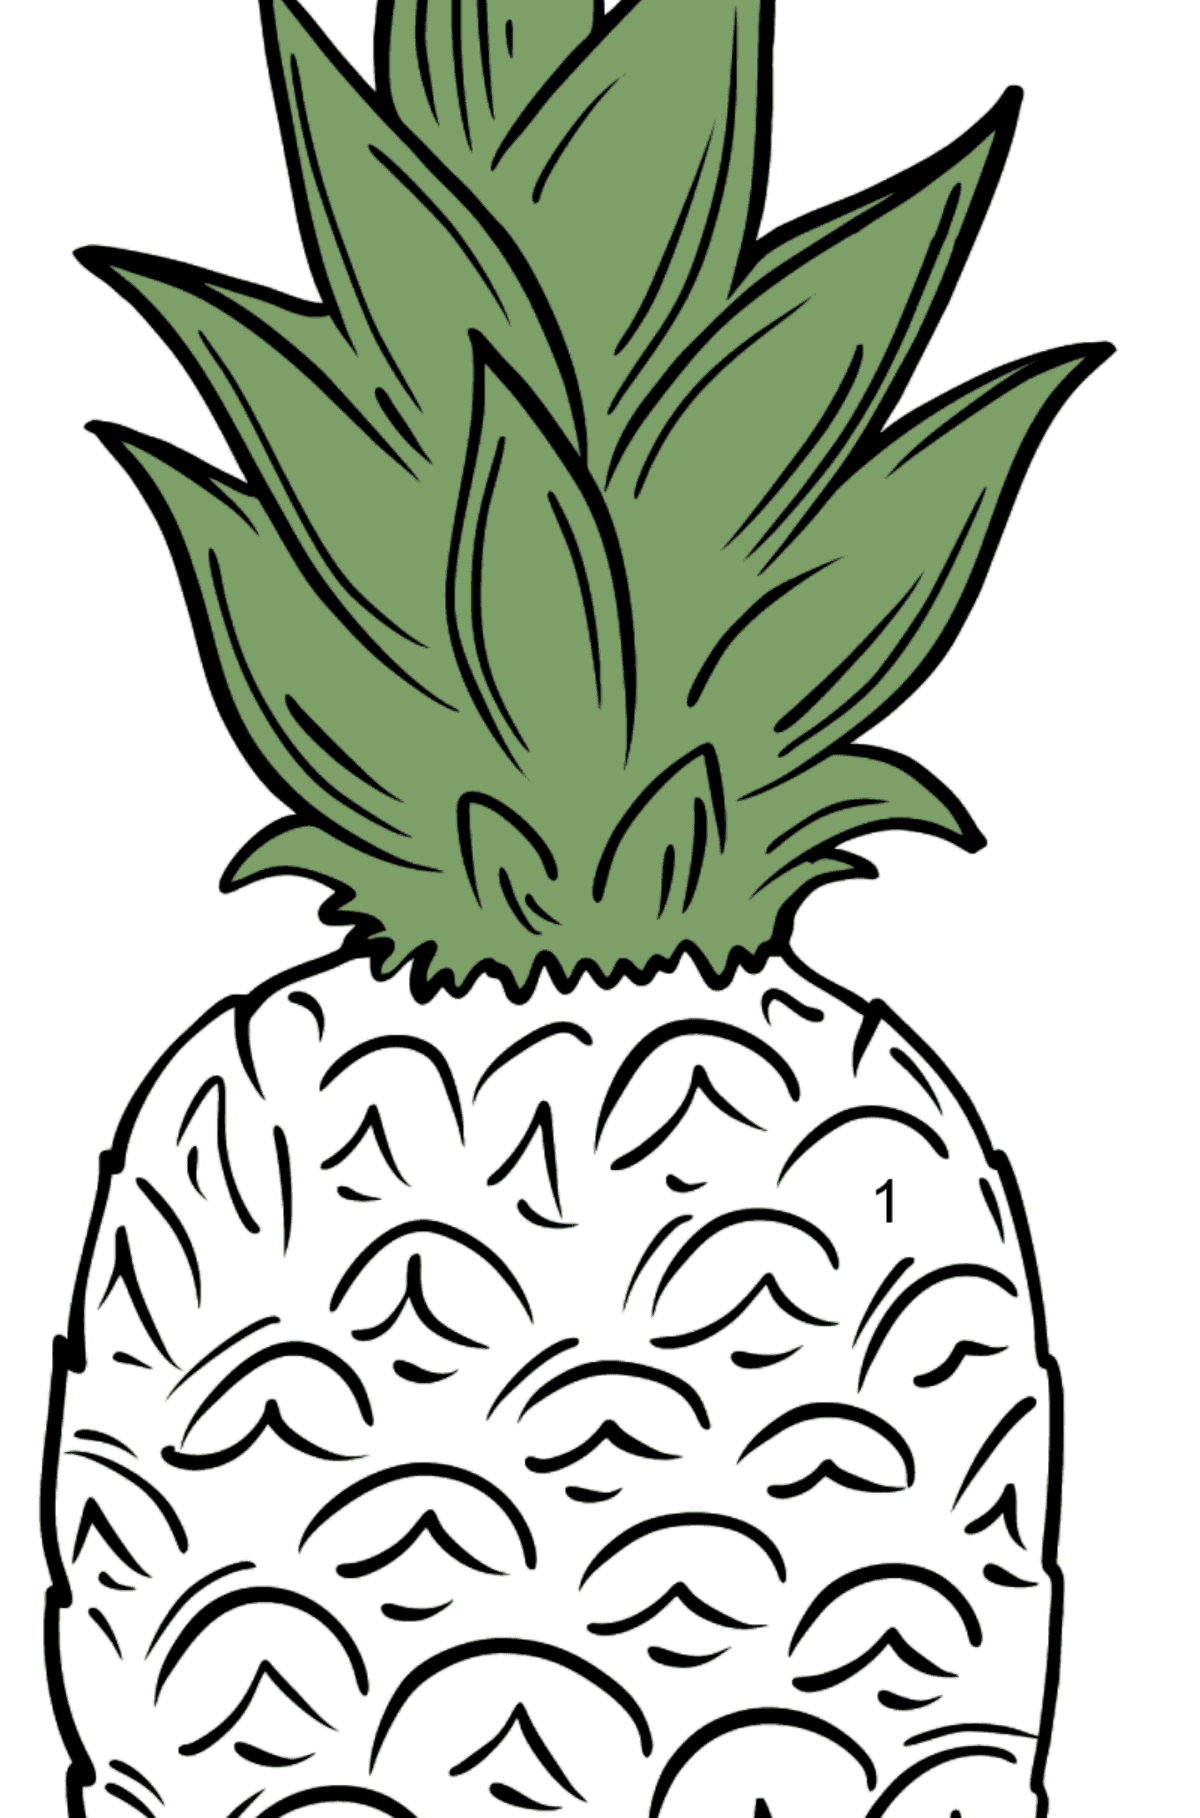 Pineapple coloring page - Coloring by Numbers for Kids